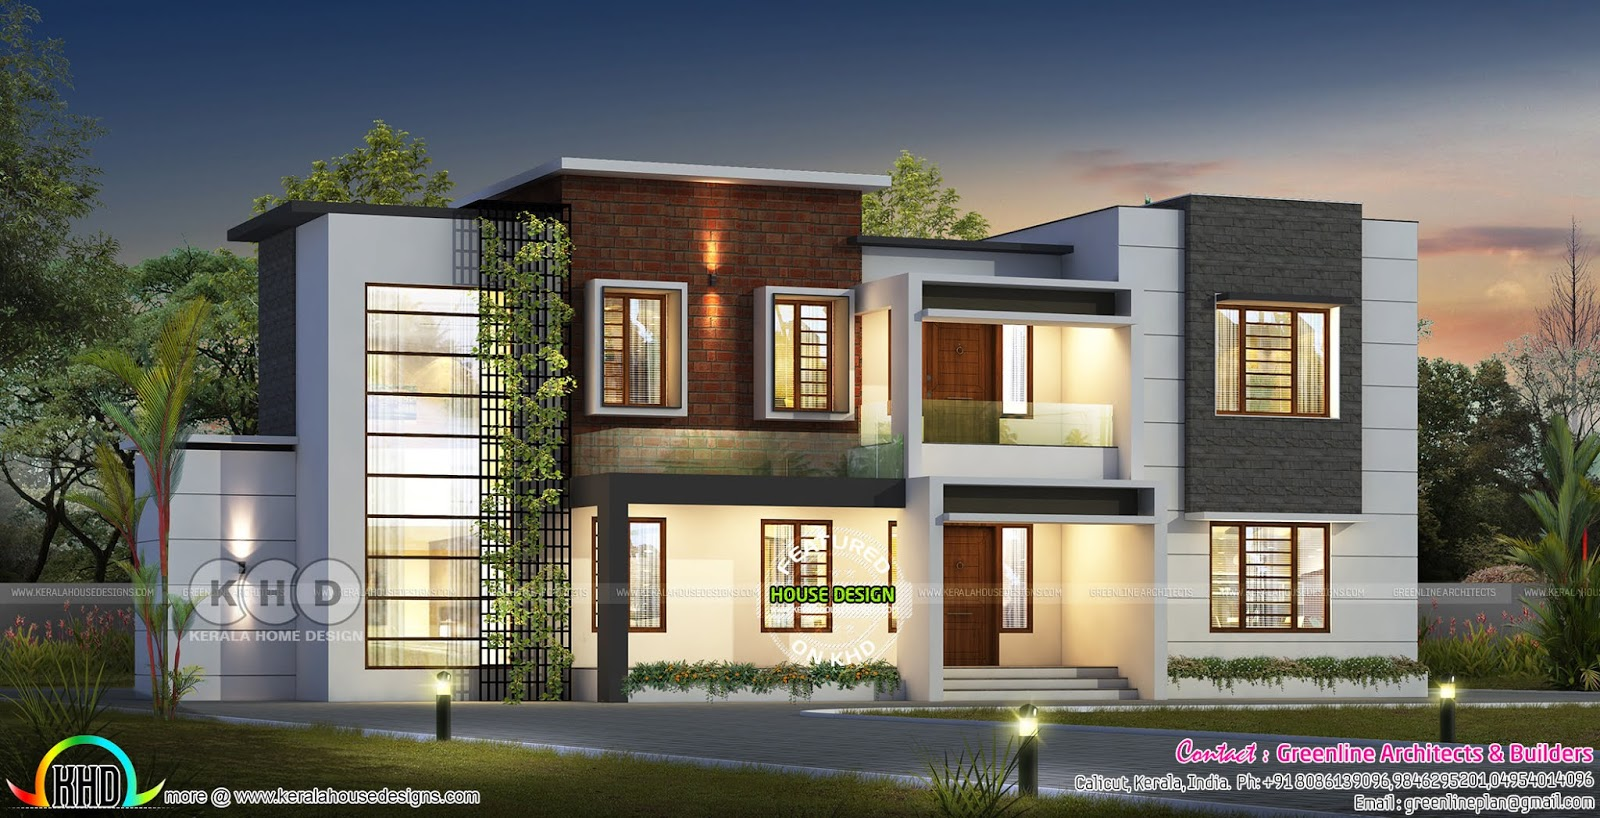 5 bedroom modern contemporary home 4800 square feet ...